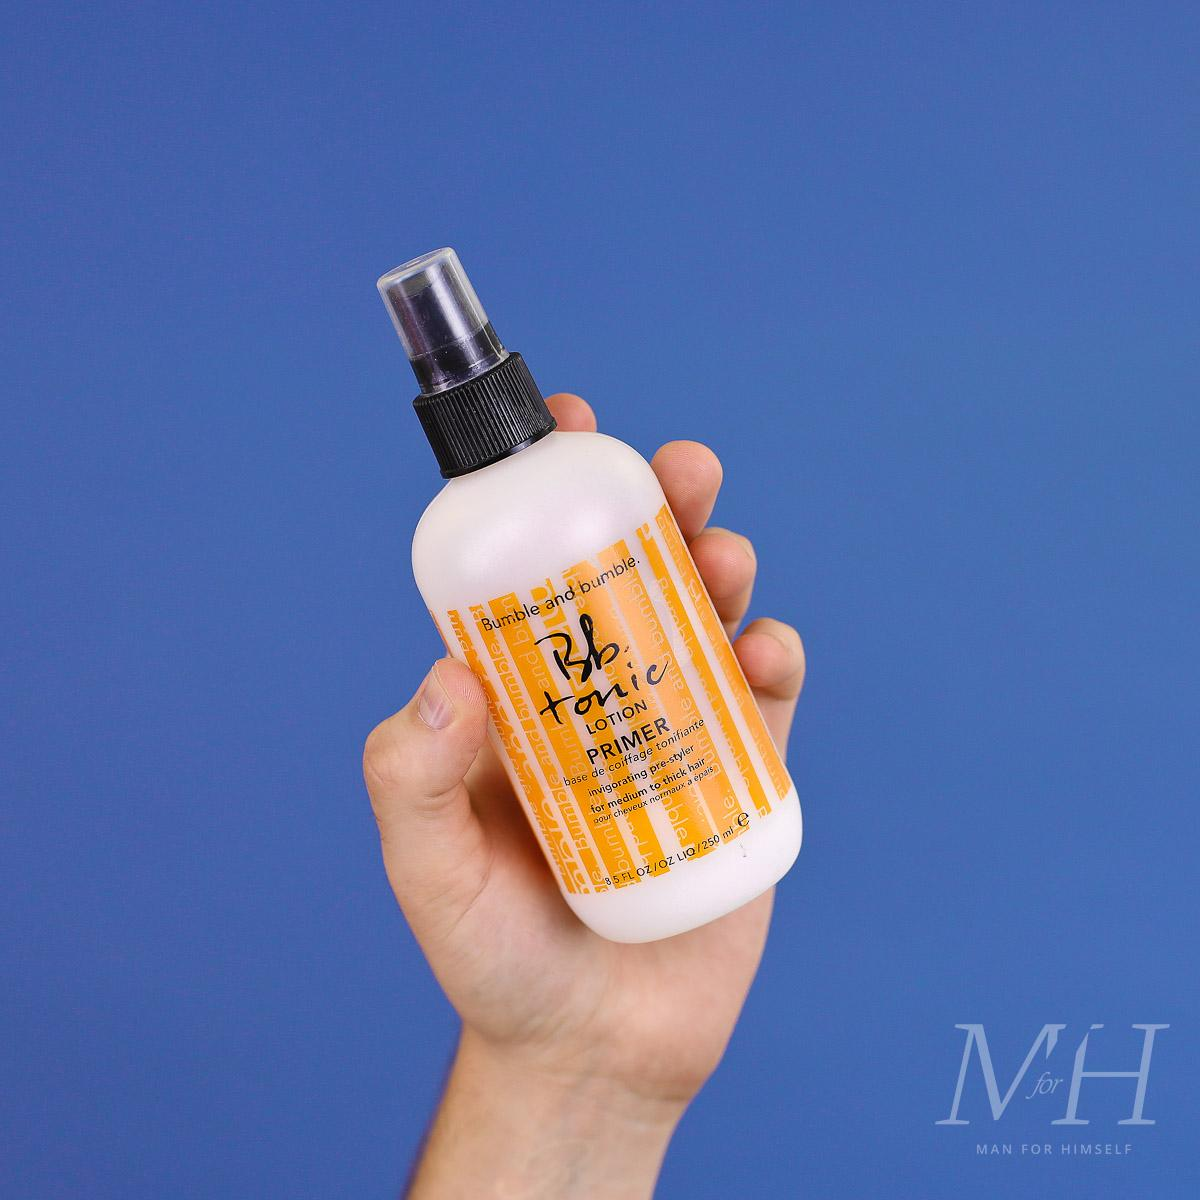 bumble-and-bumble-primer-tonic-product-review-man-for-himself